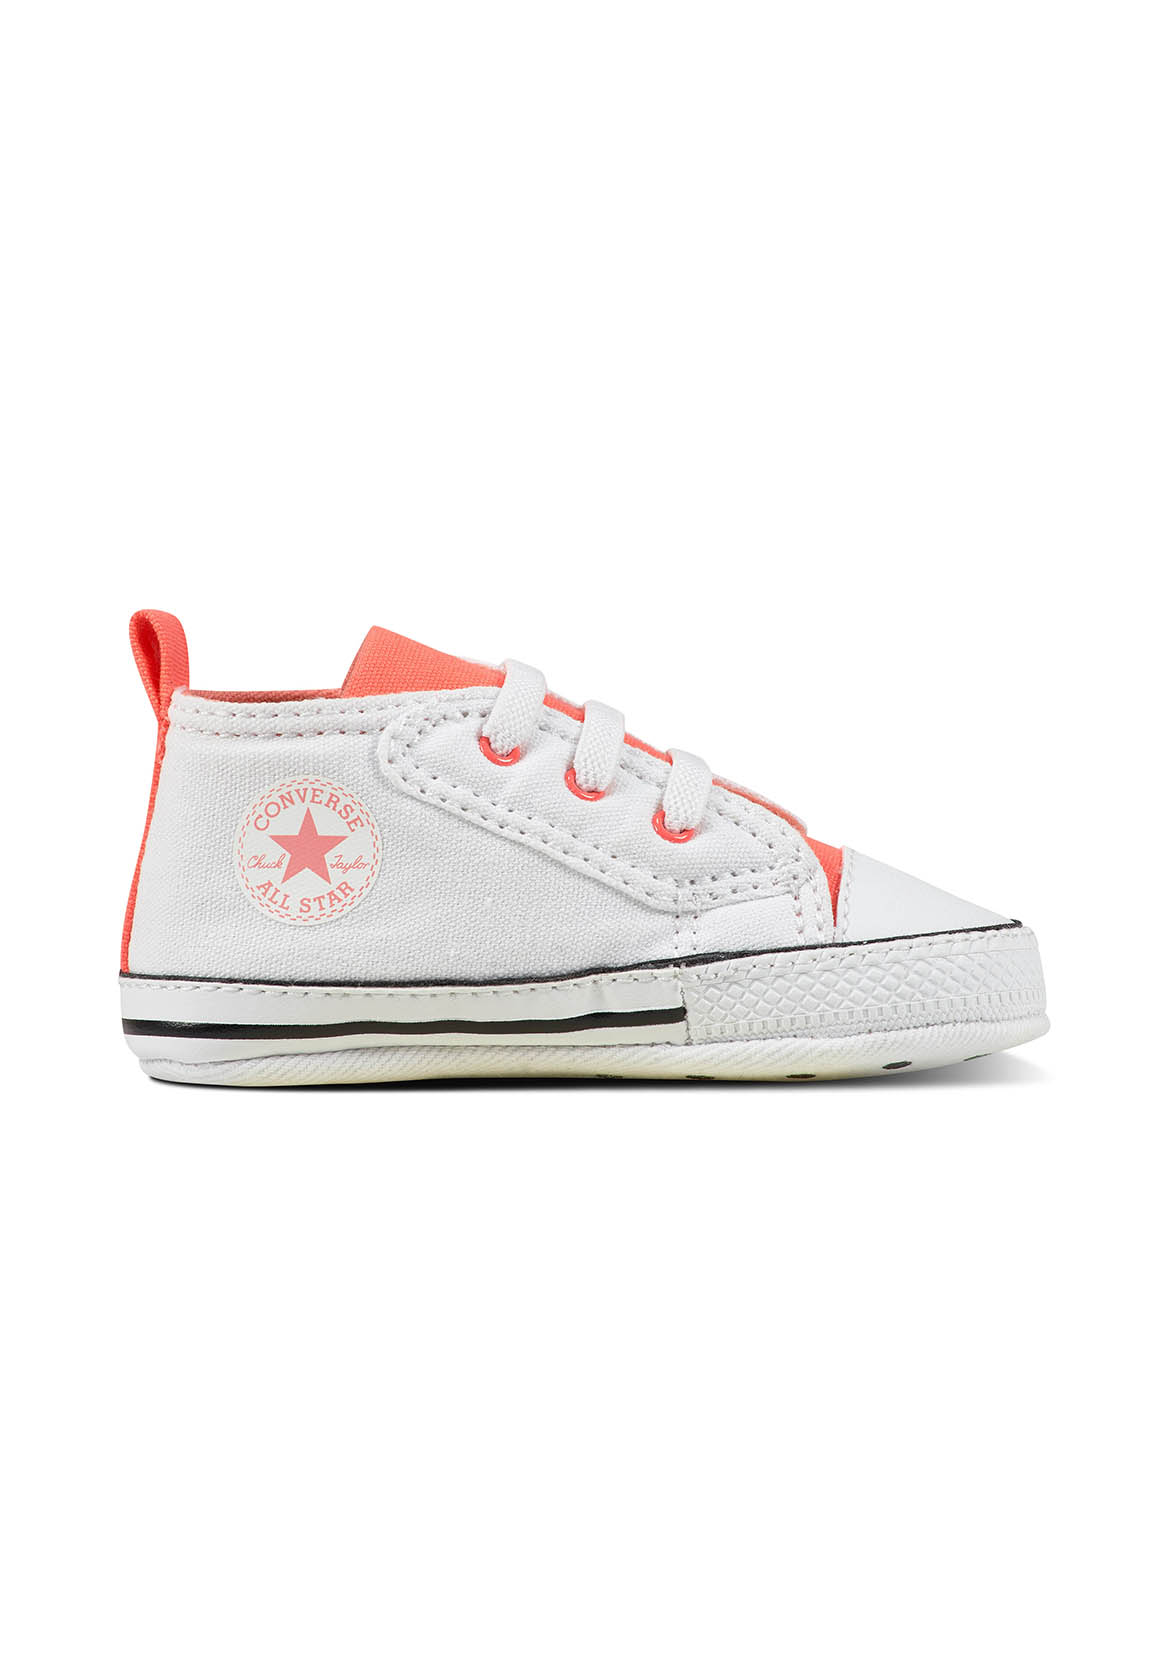 check out b9861 ac9ab Converse Babyschuhe CT AS FIRST STAR EASY SLIP 857430C Weiß Pink